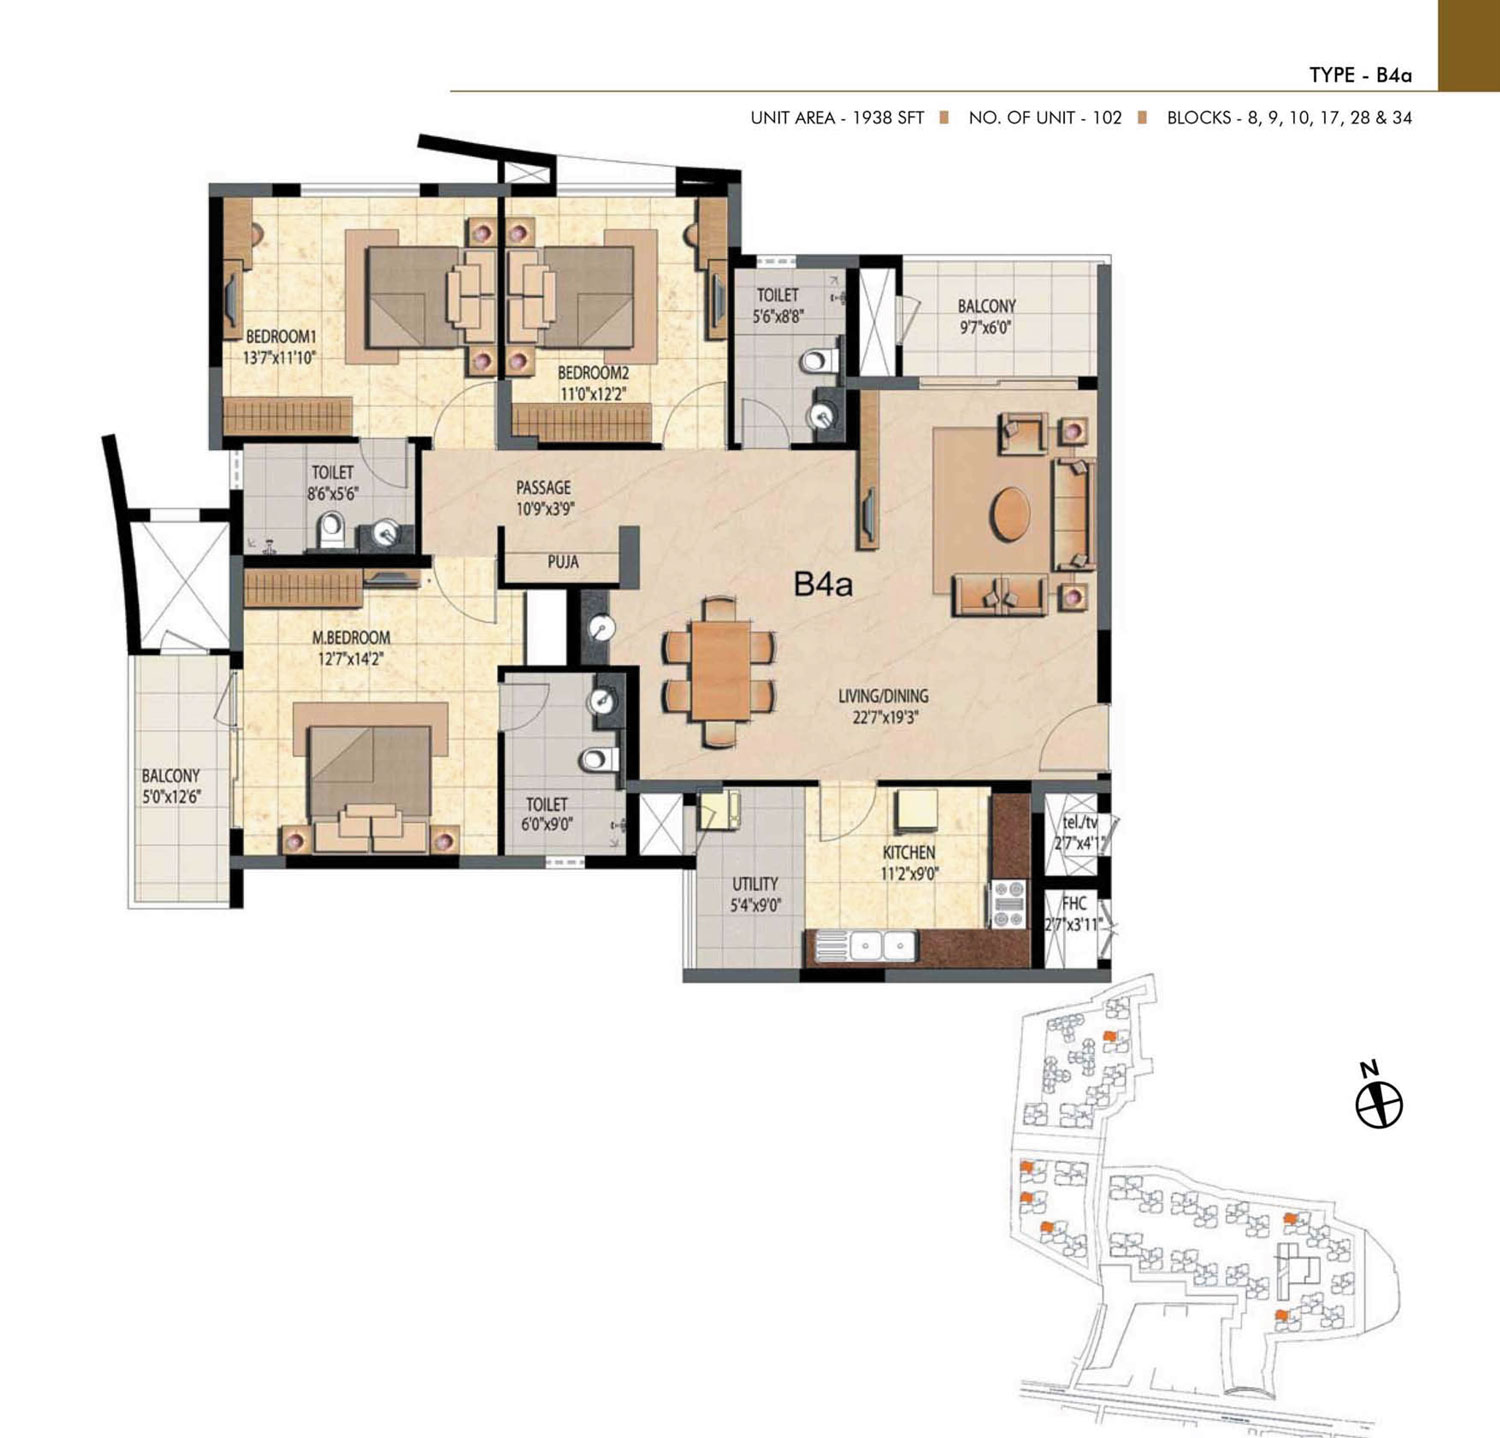 Type B4A - 3 Bed - 1938 Sq Ft